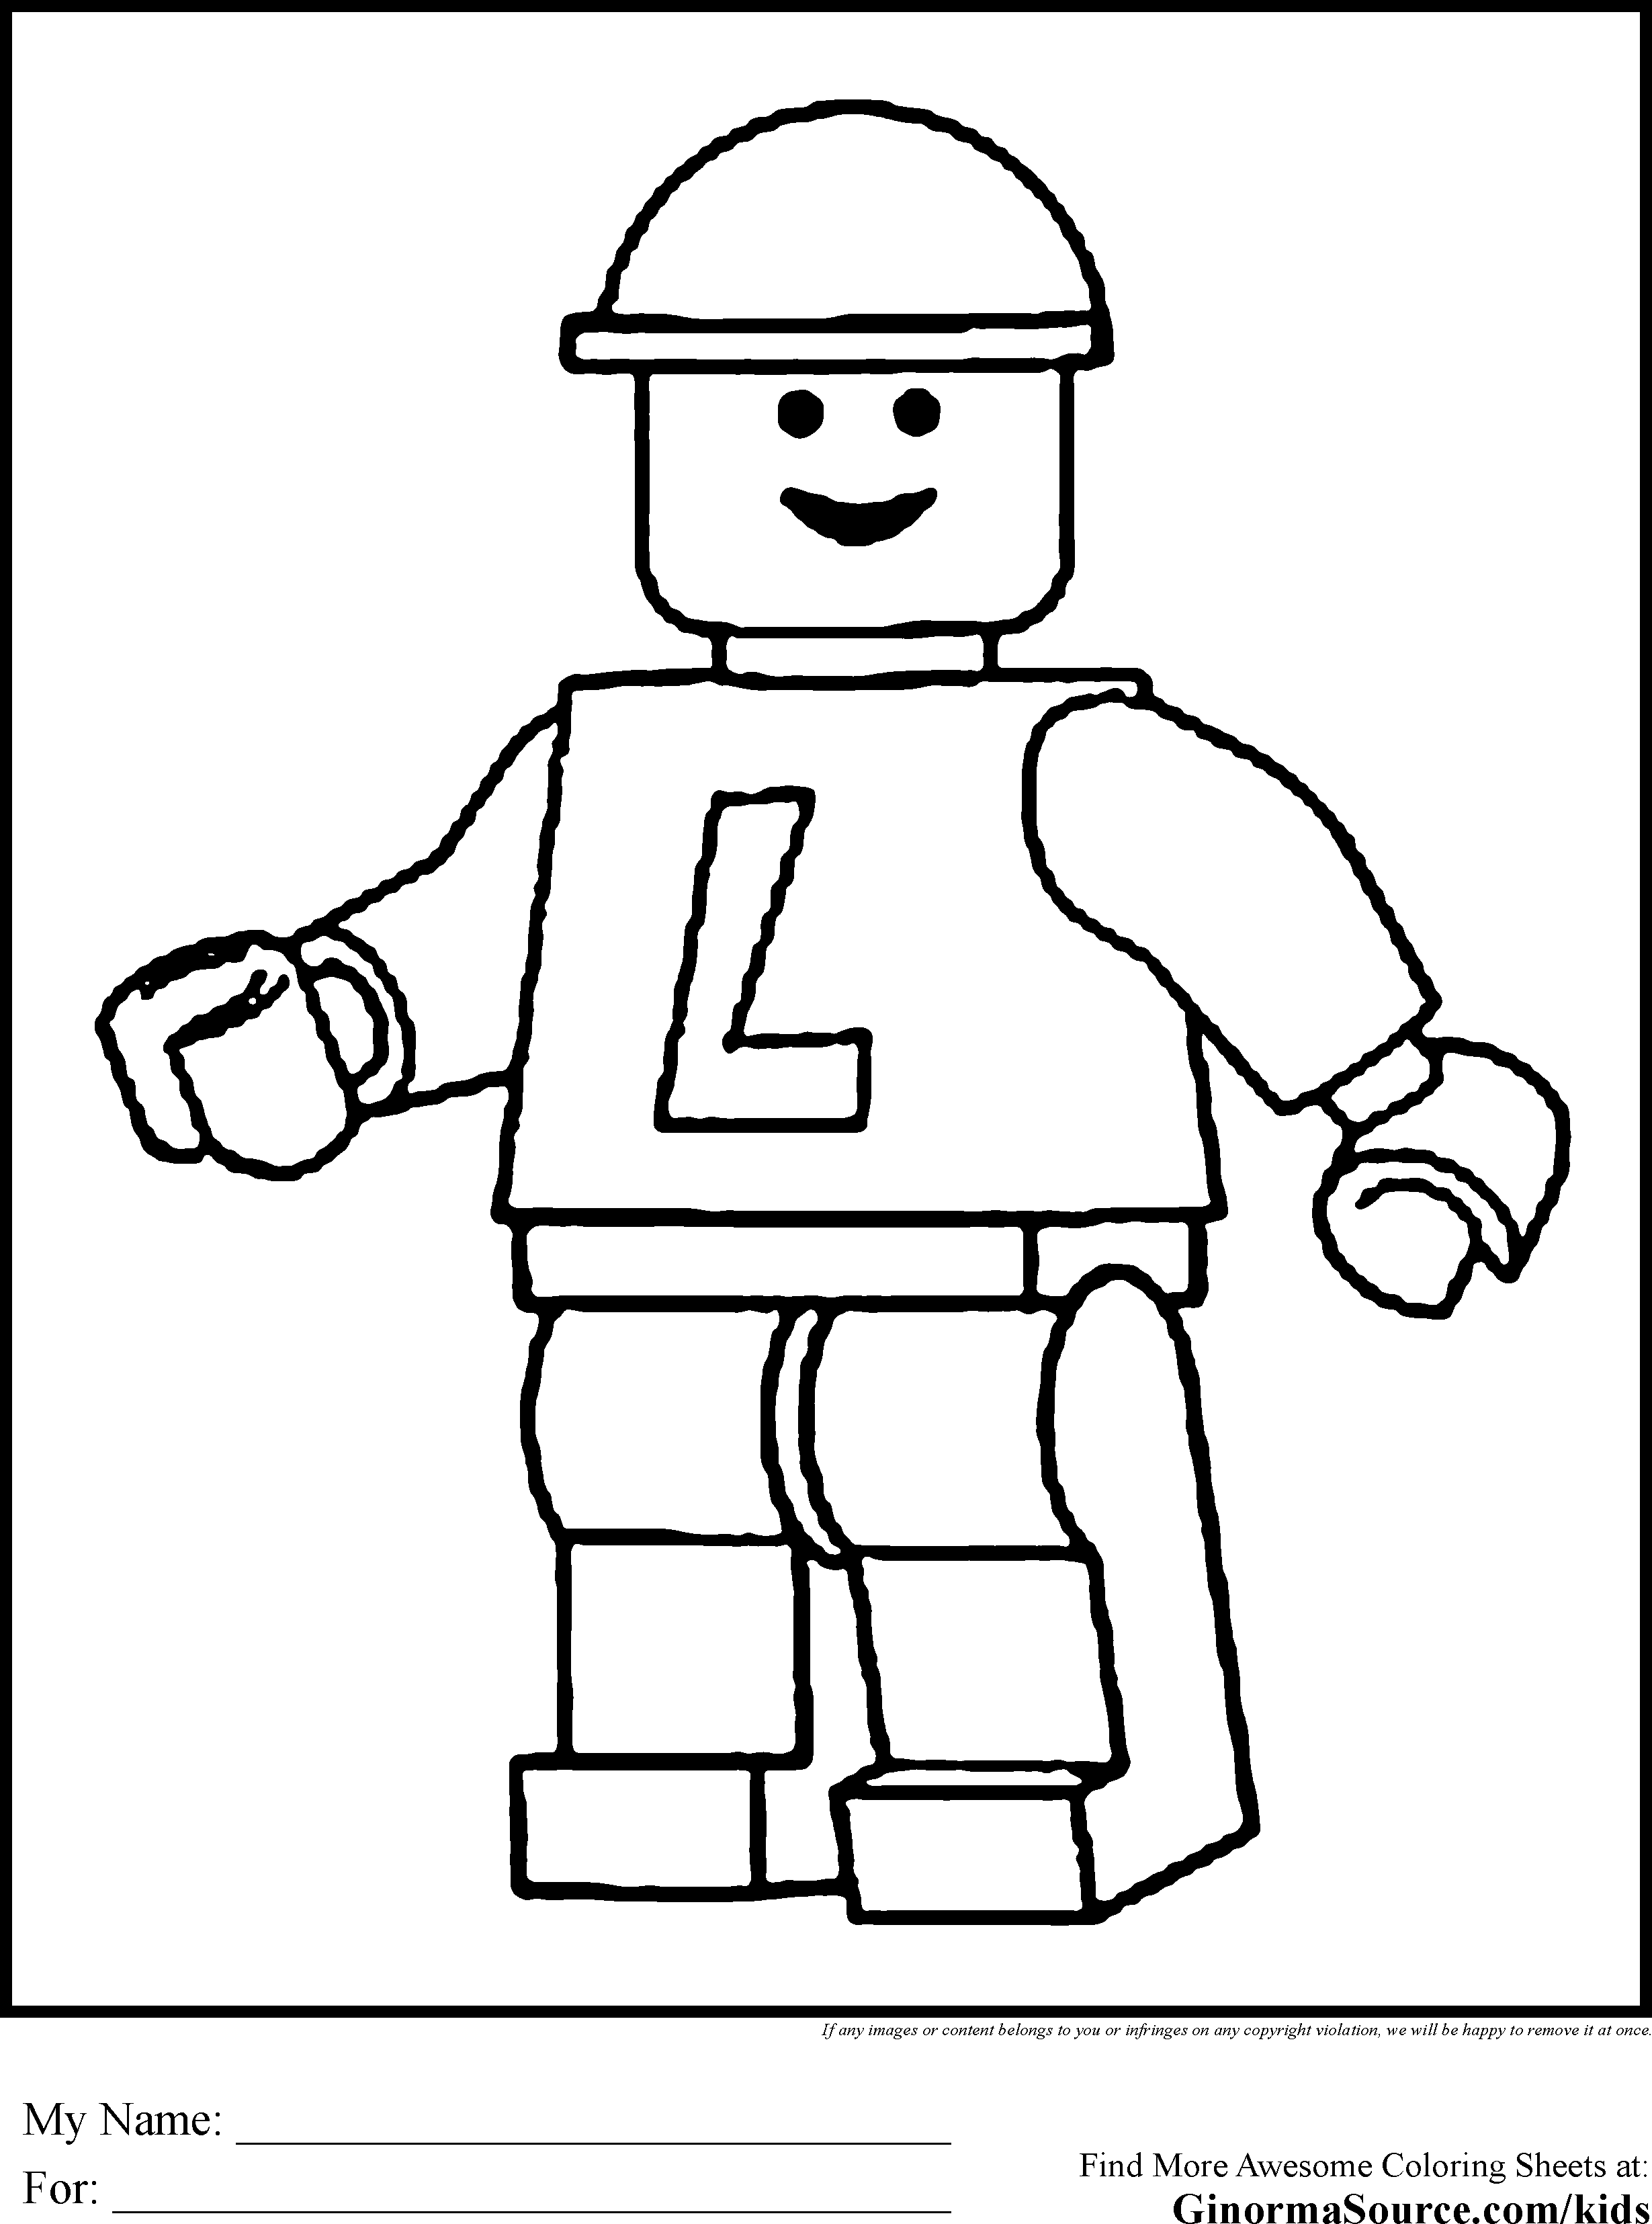 Lego coloring sheets only coloring pages for Free printable lego coloring pages for kids